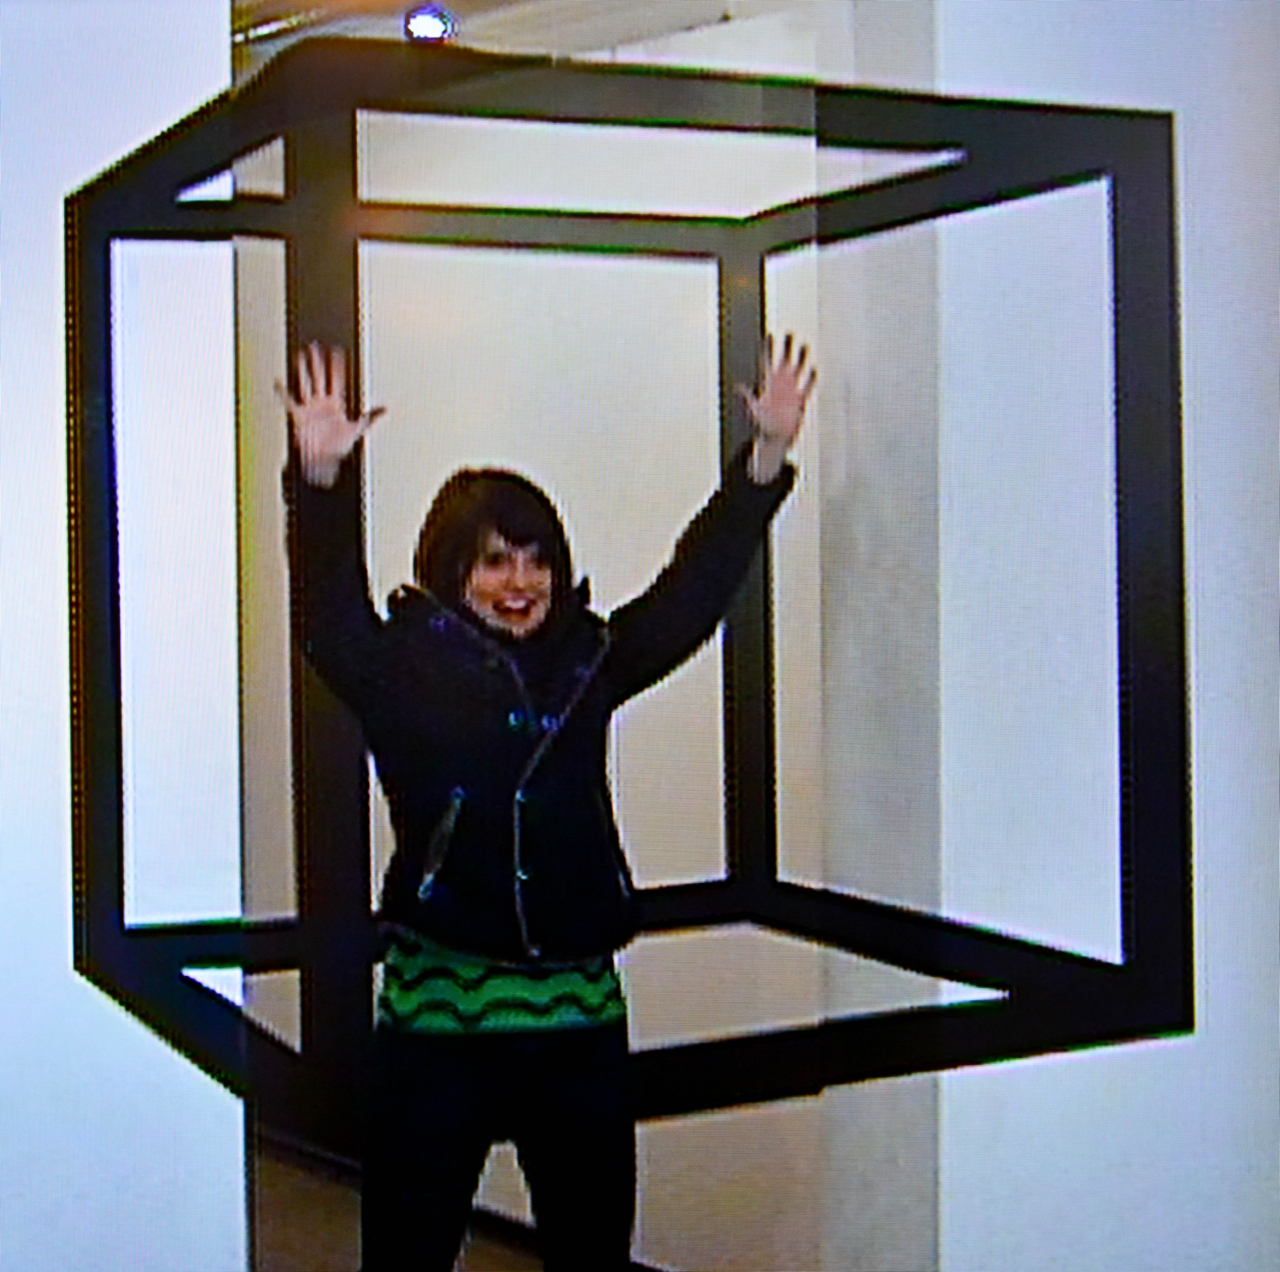 An optical illusion in the interactive part of the museum (sorry about the quality; it was taken from a tv screen!)